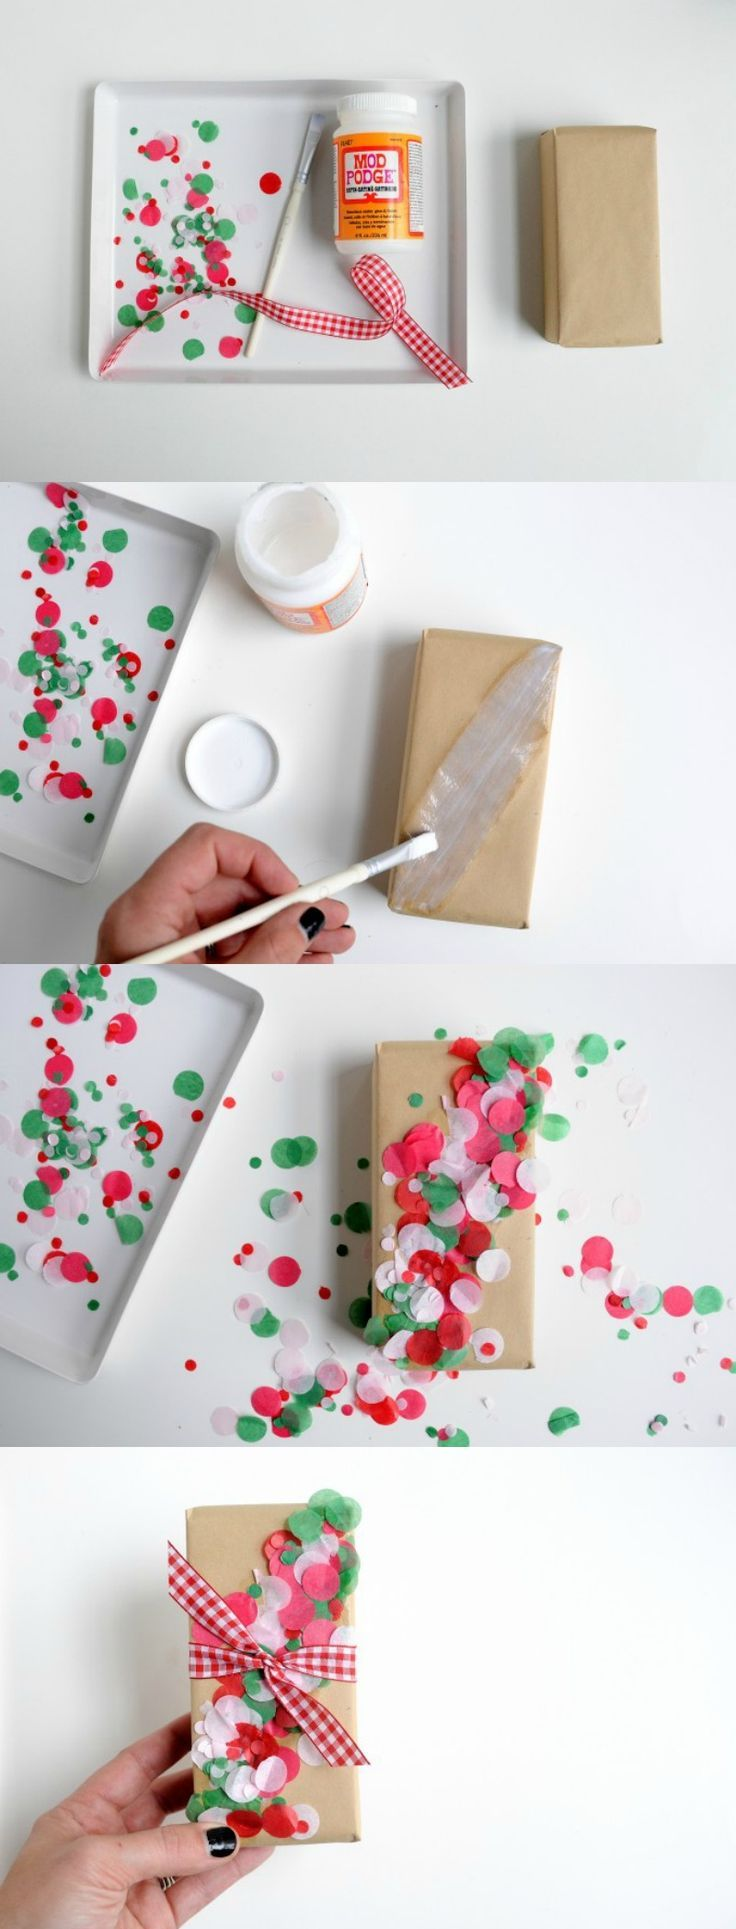 If you tend to do things a little last minute like me, here's a unique and creative idea for embellishing wrapped gifts. This DIY confetti gift wrap is so fun and colorful for Christmas. This is one of those ideas you'll want to adapt to birthday and beyond.